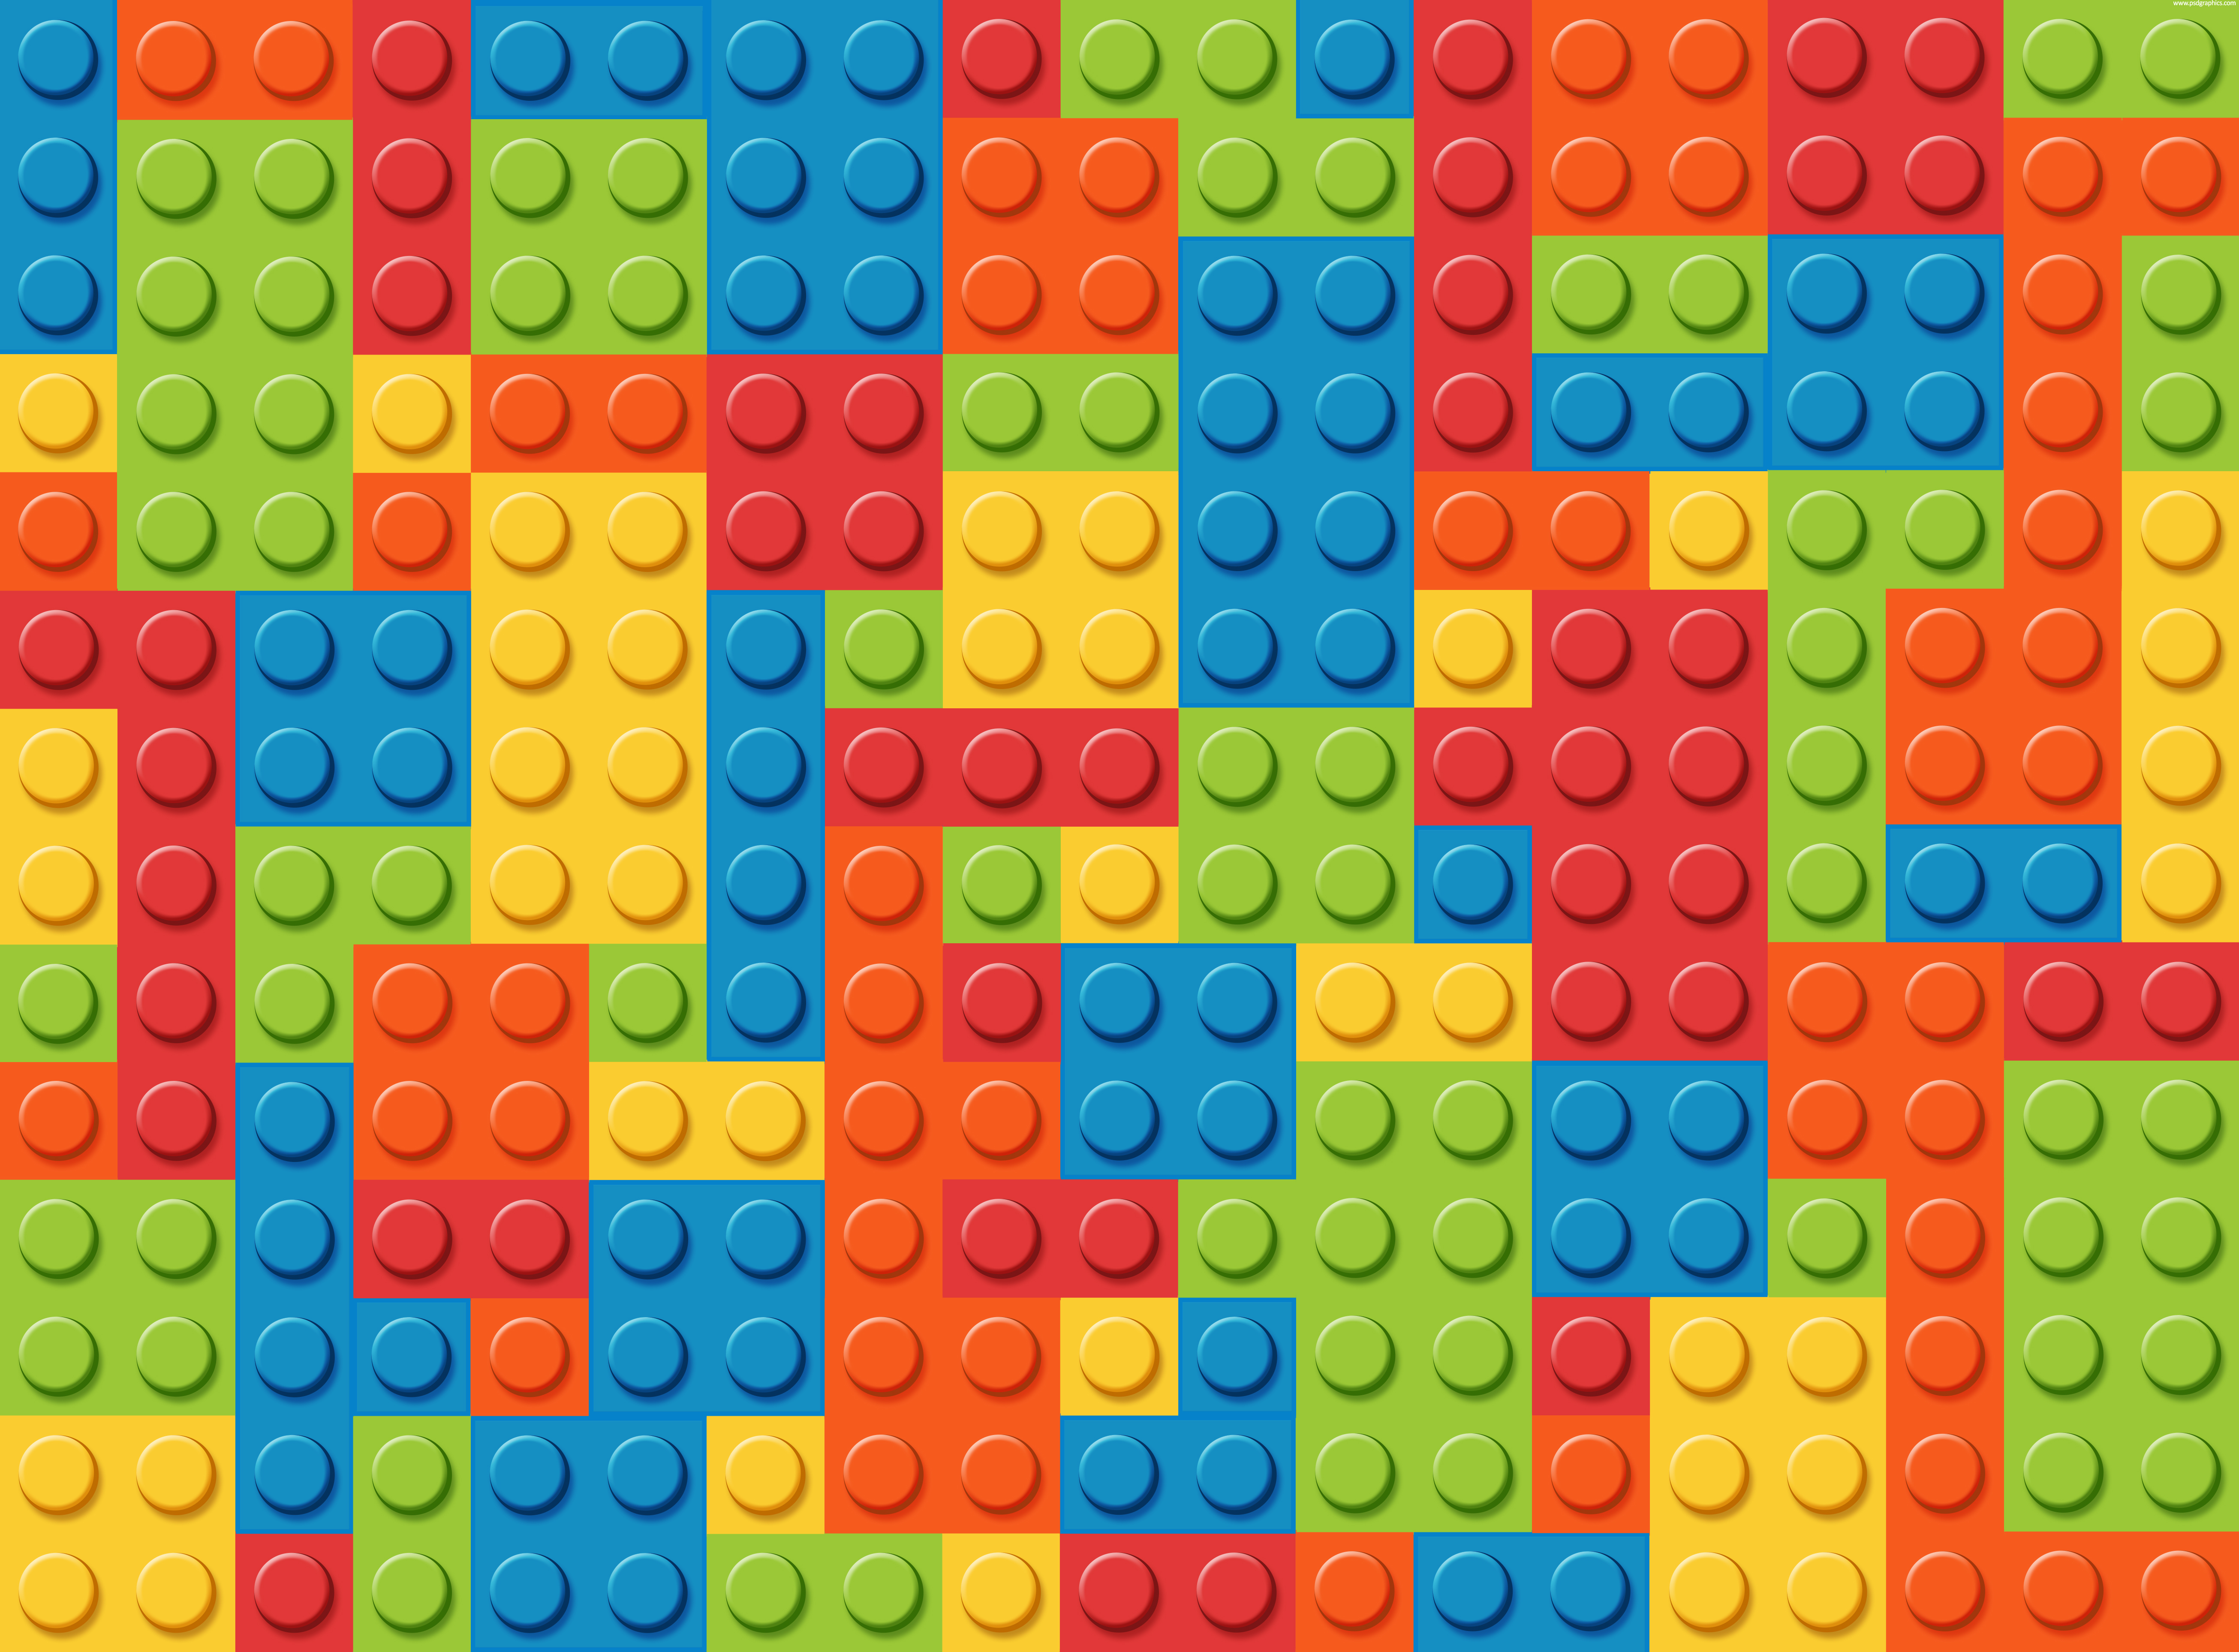 8 Lego Background Psd Download Images